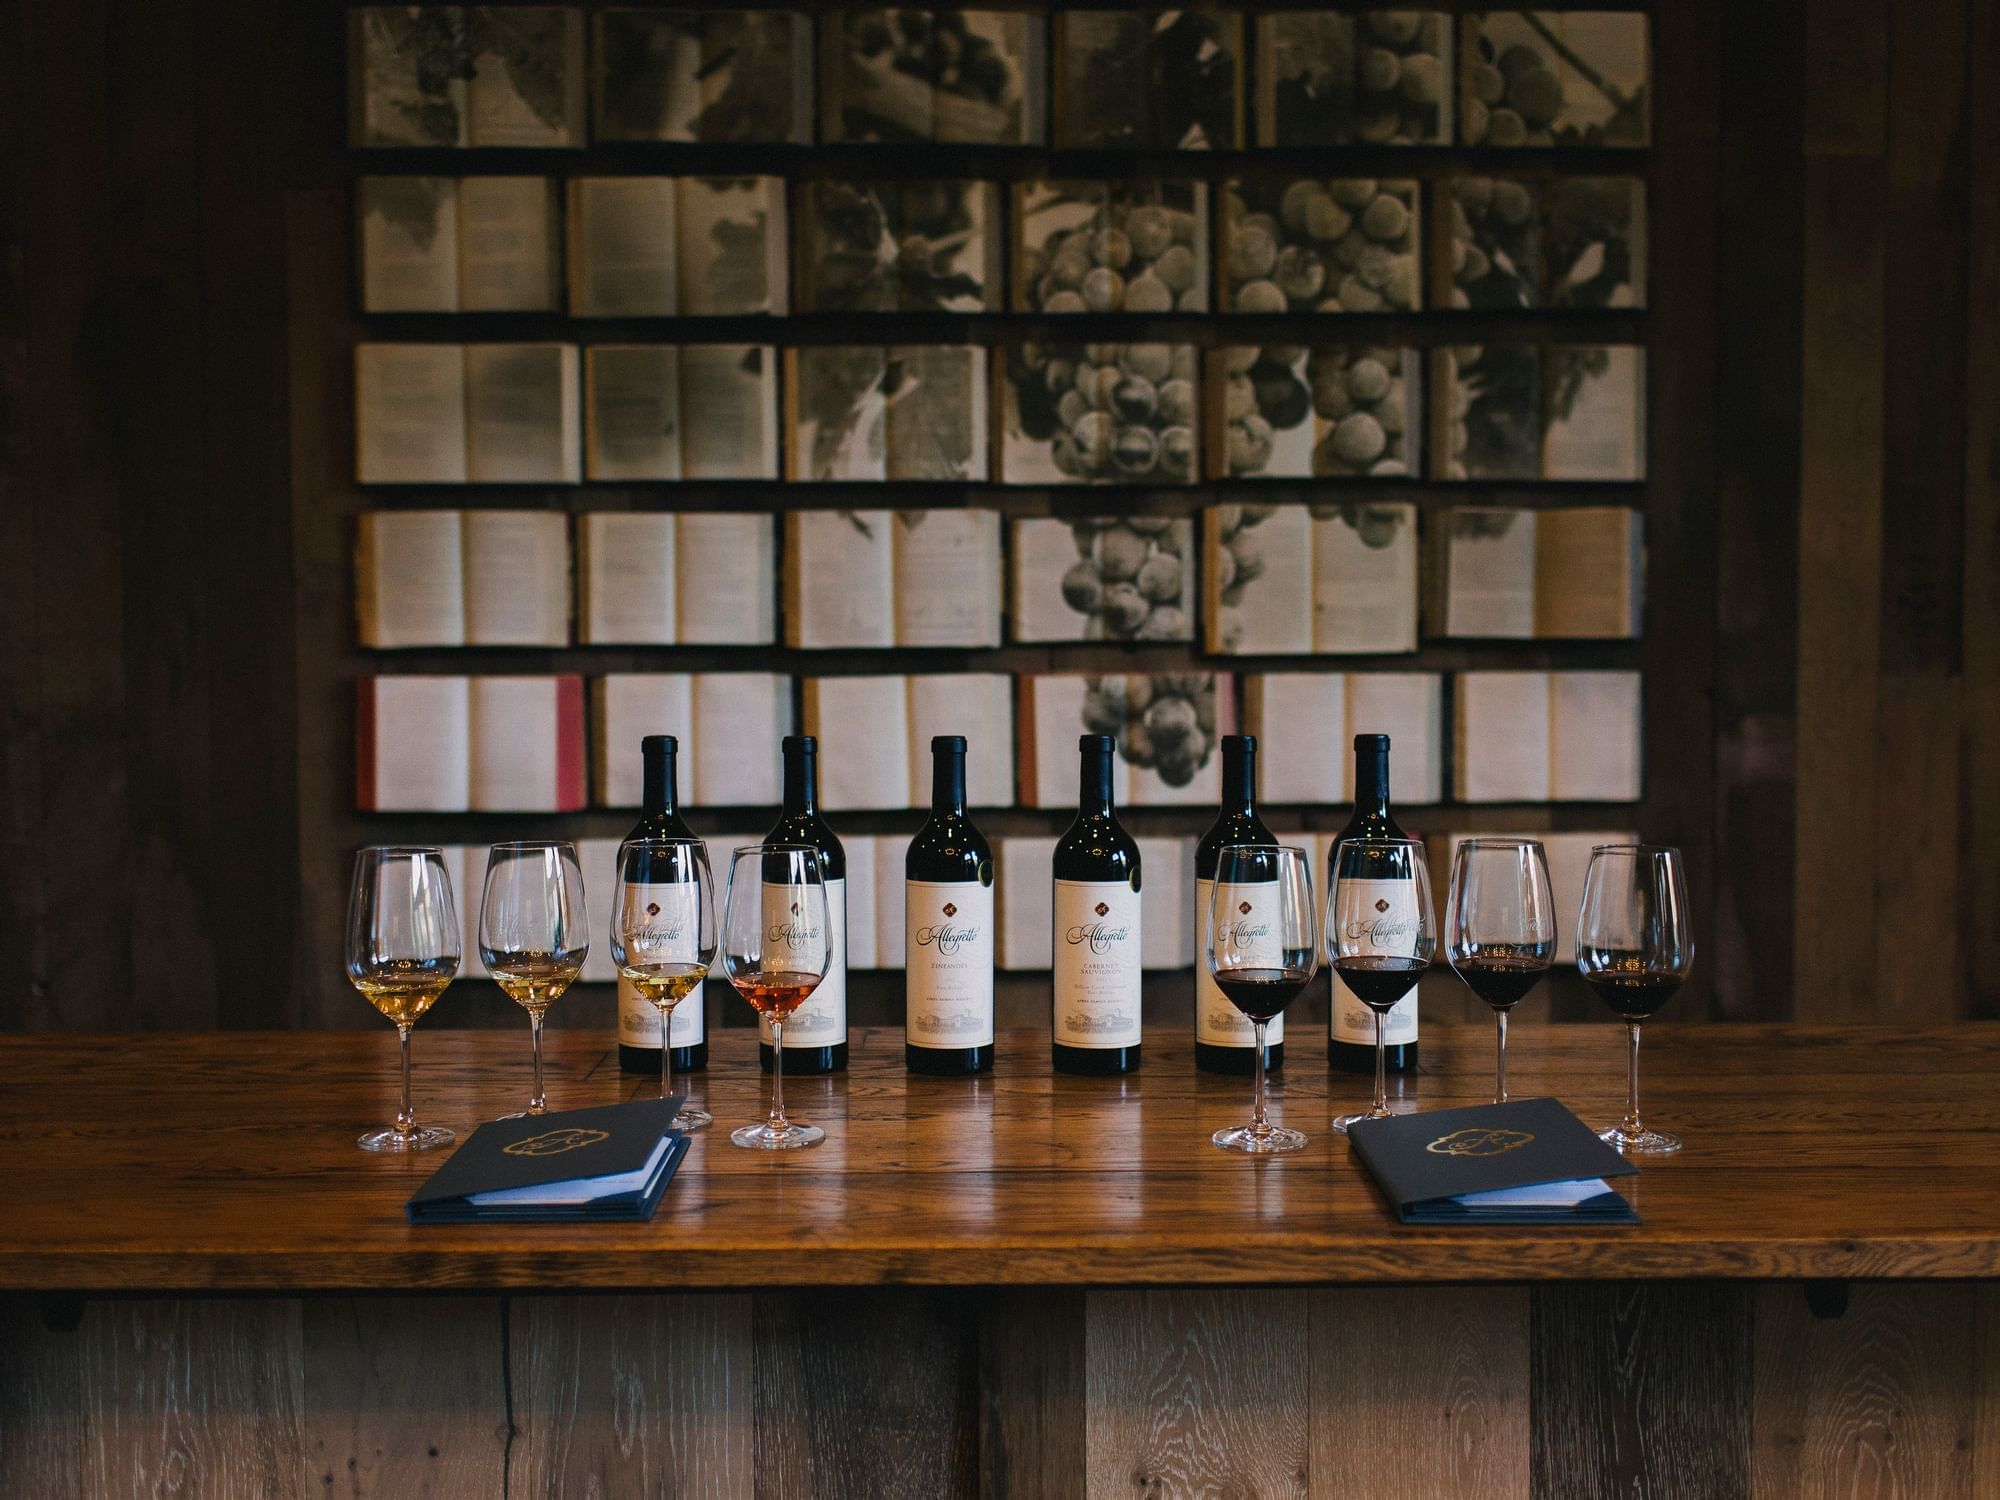 Allegretto's signature wine bottles lined up on a wooden table